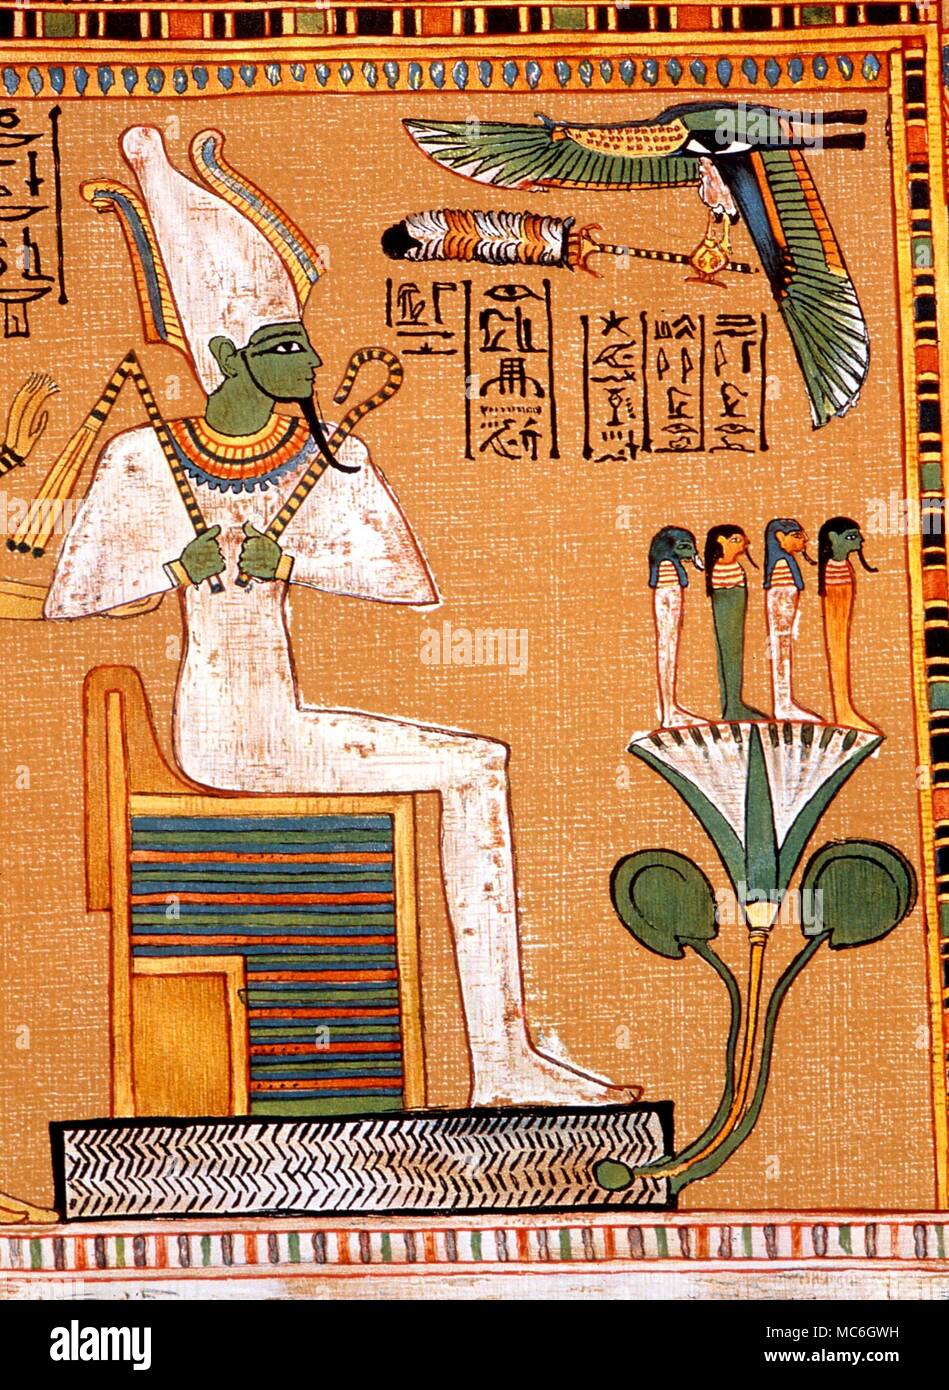 La Mythologie Egyptienne Osiris Le Dieu Osiris Intronise